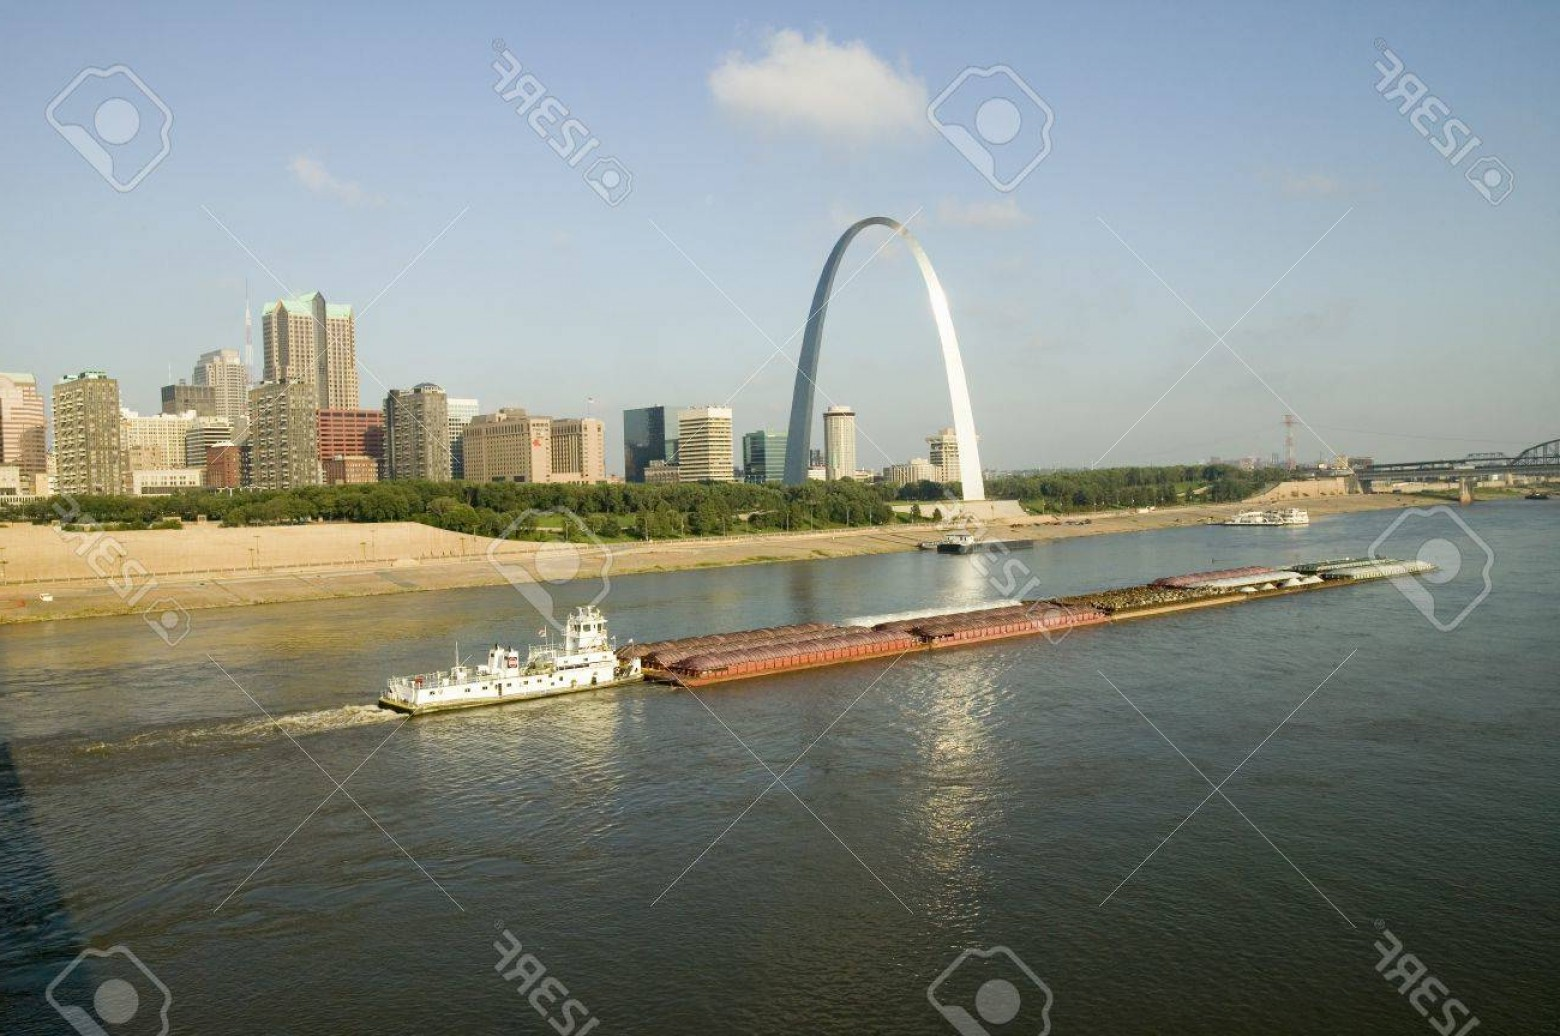 Arch Vector Illinios: Photodaytime View Of Tug Boat Pushing Barge Down Mississippi River In Front Of Gateway Arch And Skyline O